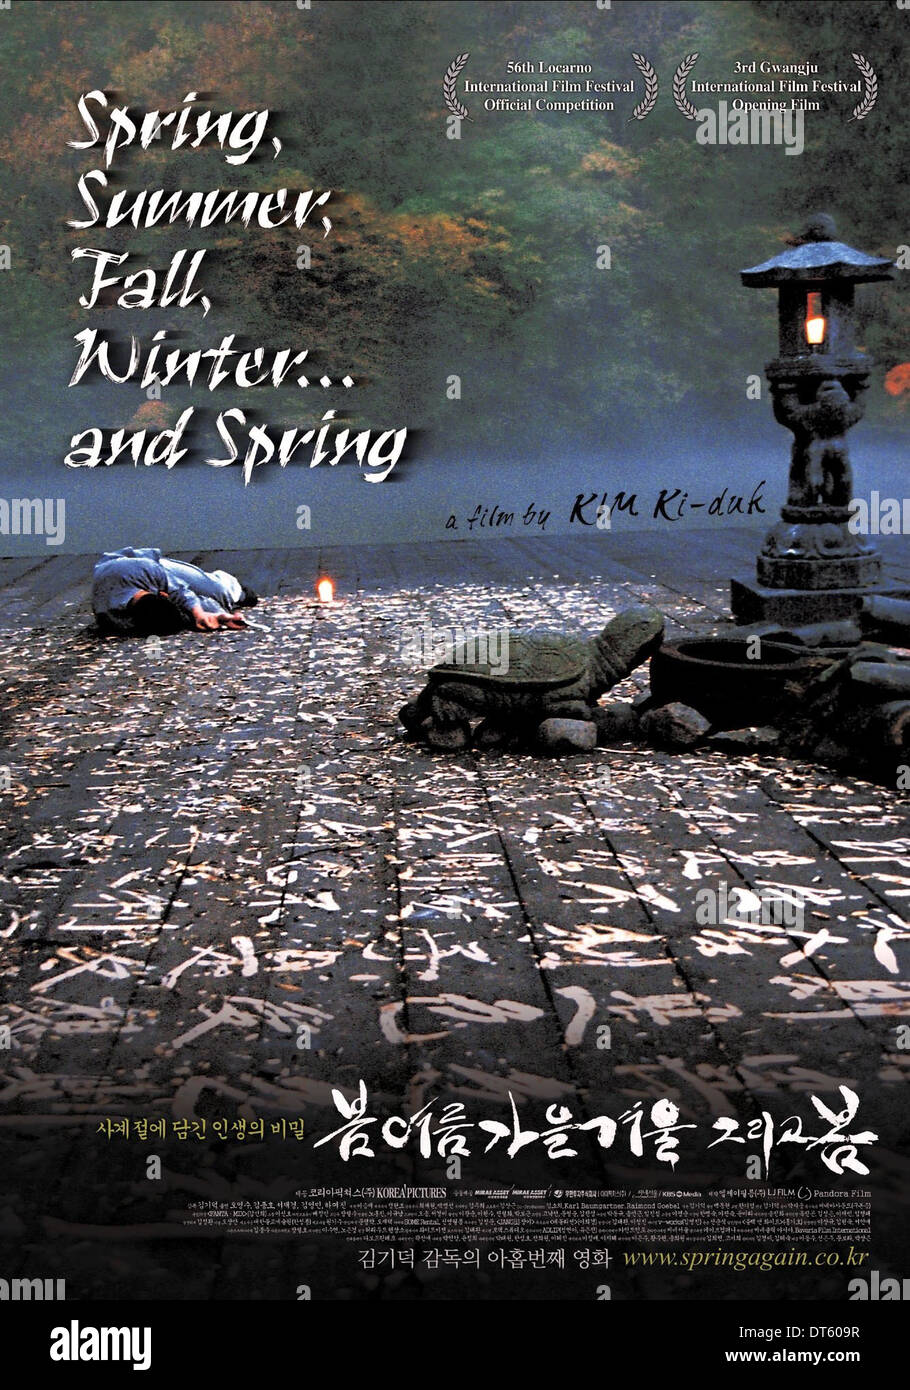 MOVIE POSTER SPRING SUMMER FALL WINTER... AND SPRING (2003 ...